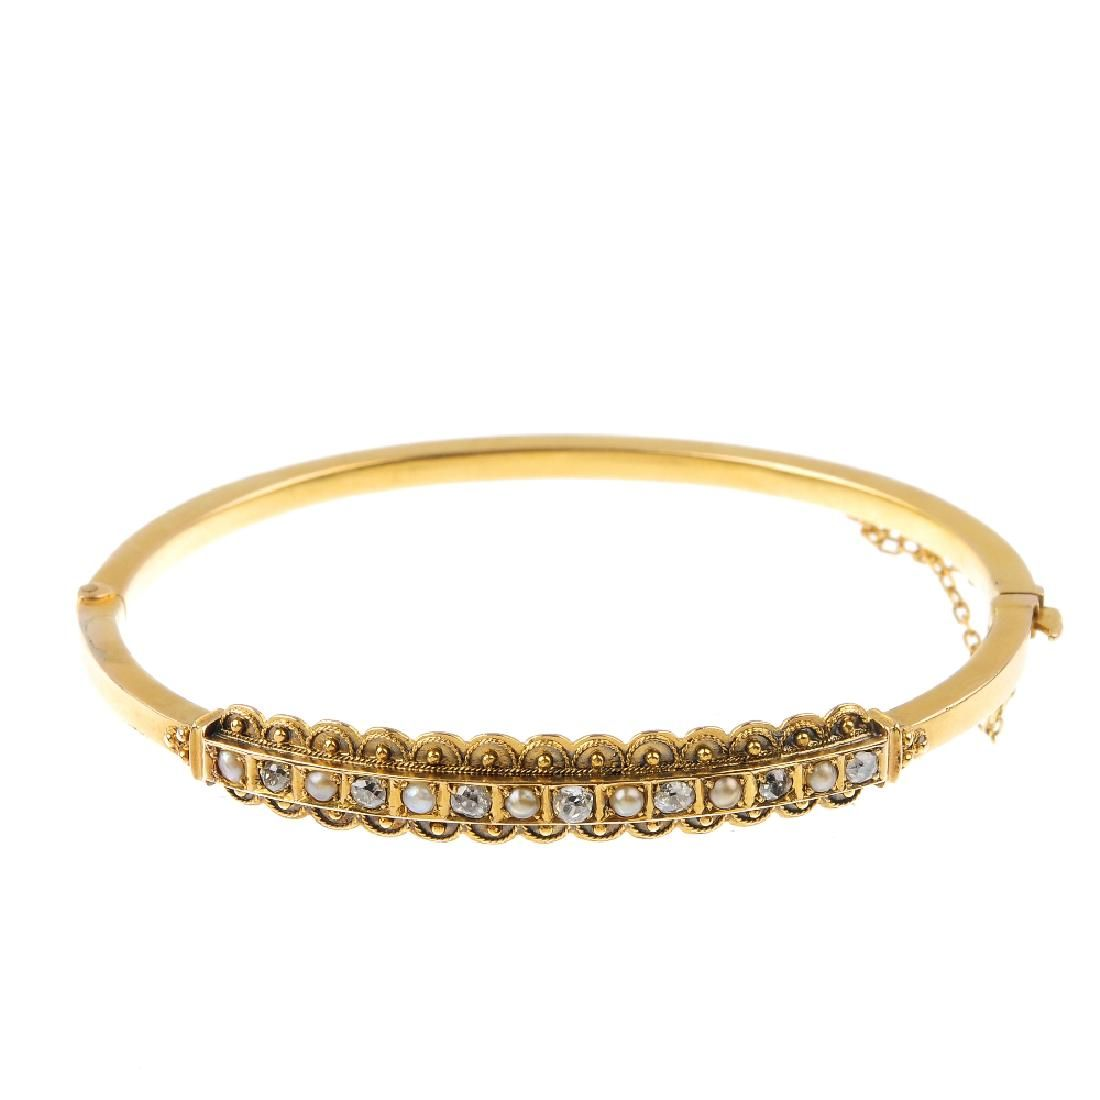 A late Victorian gold split pearl and diamond bangle